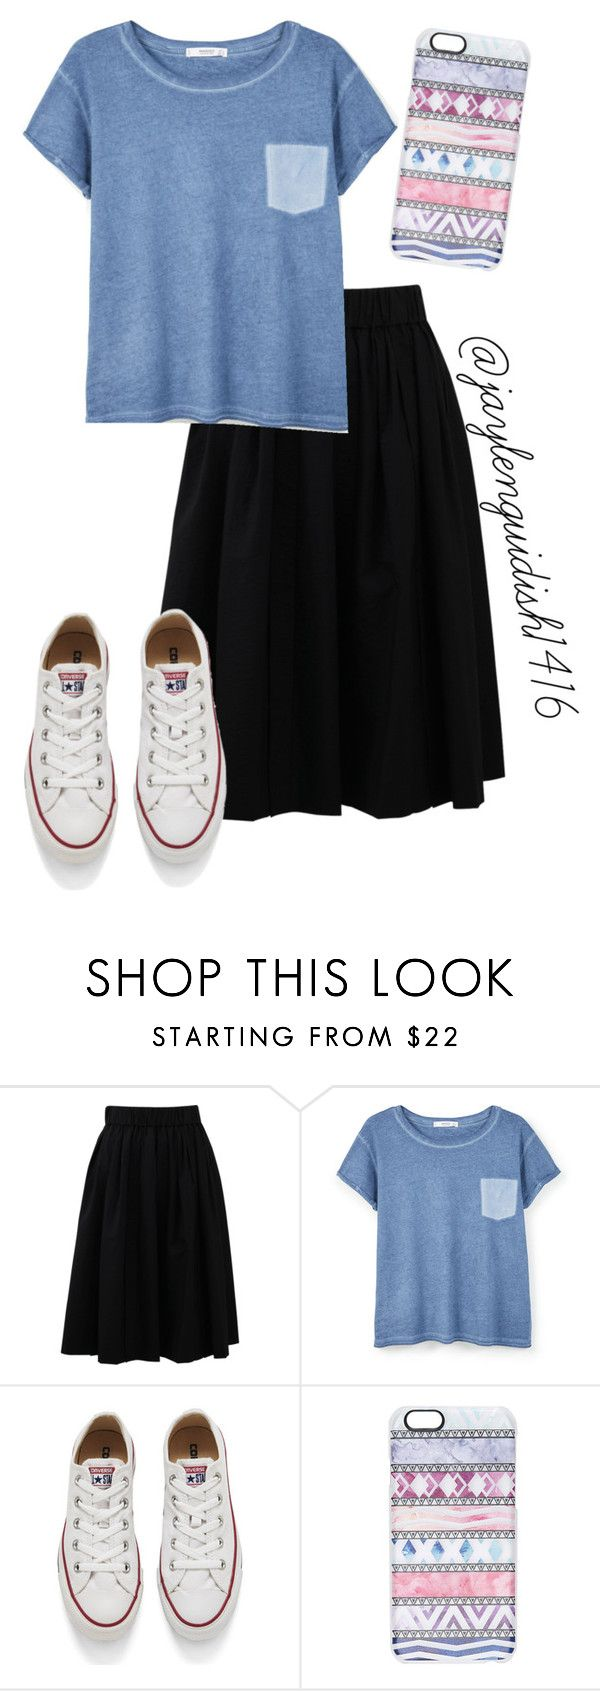 """""""apostolic fashion"""" by jaylenguidish0416 on Polyvore featuring Brunello Cucinelli, MANGO, Converse, Casetify, women's clothing, women, female, woman, misses and juniors"""